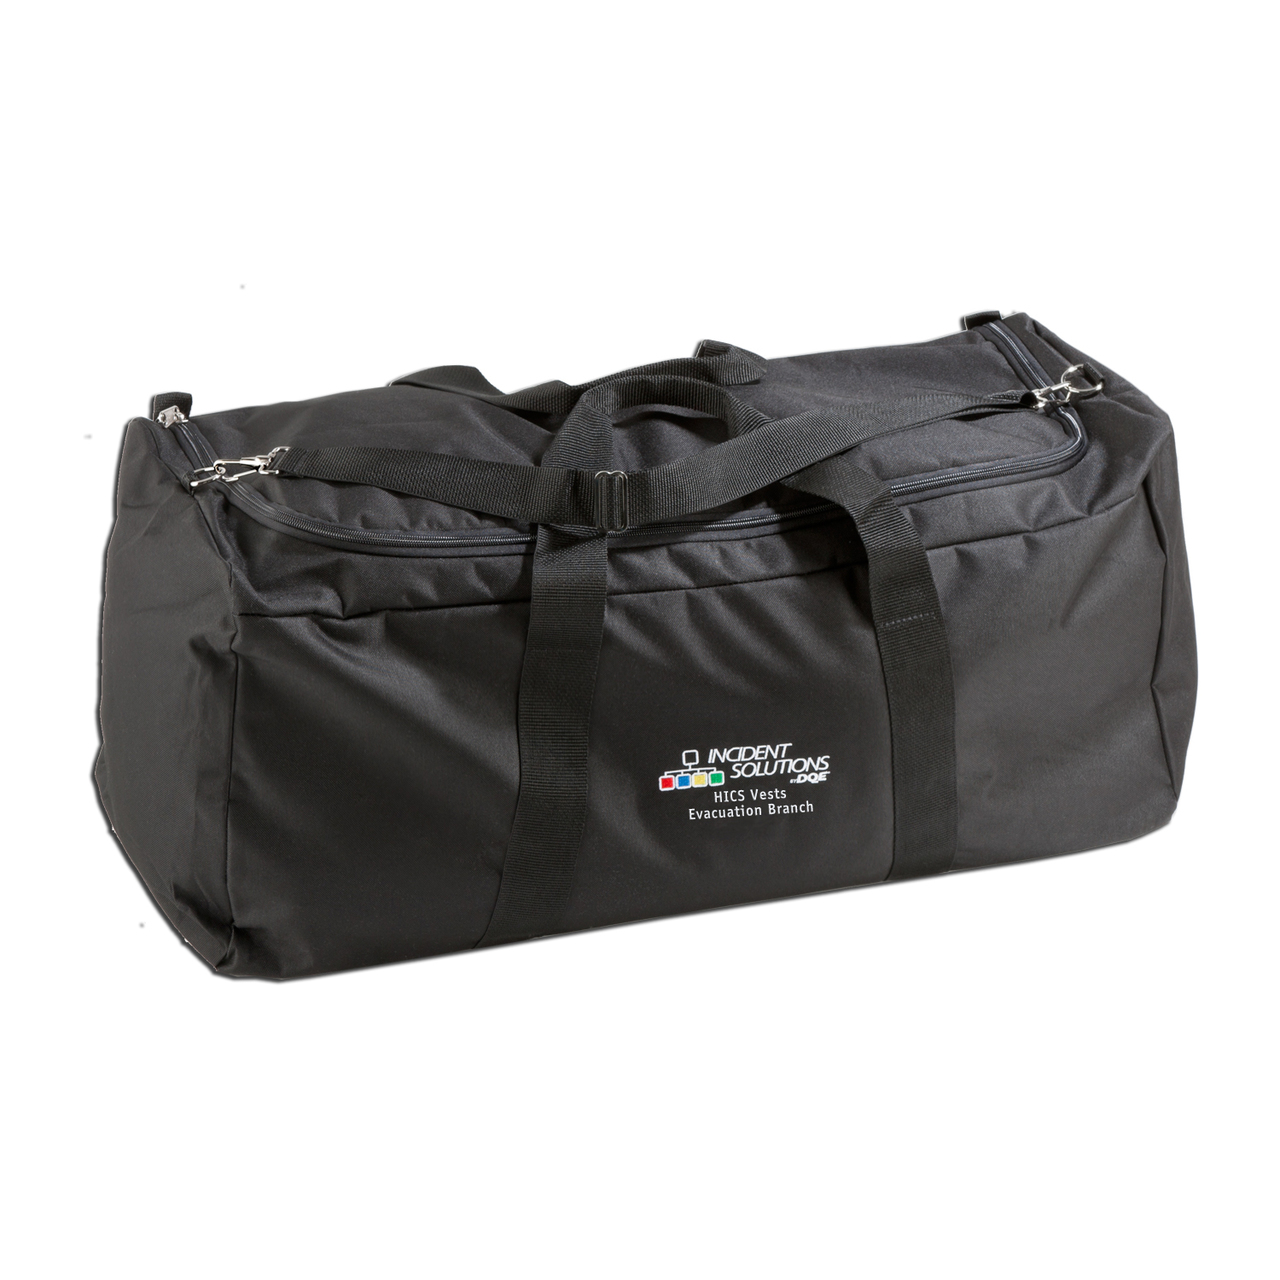 HICS Vests - Evacuation Branch Carry Bag image